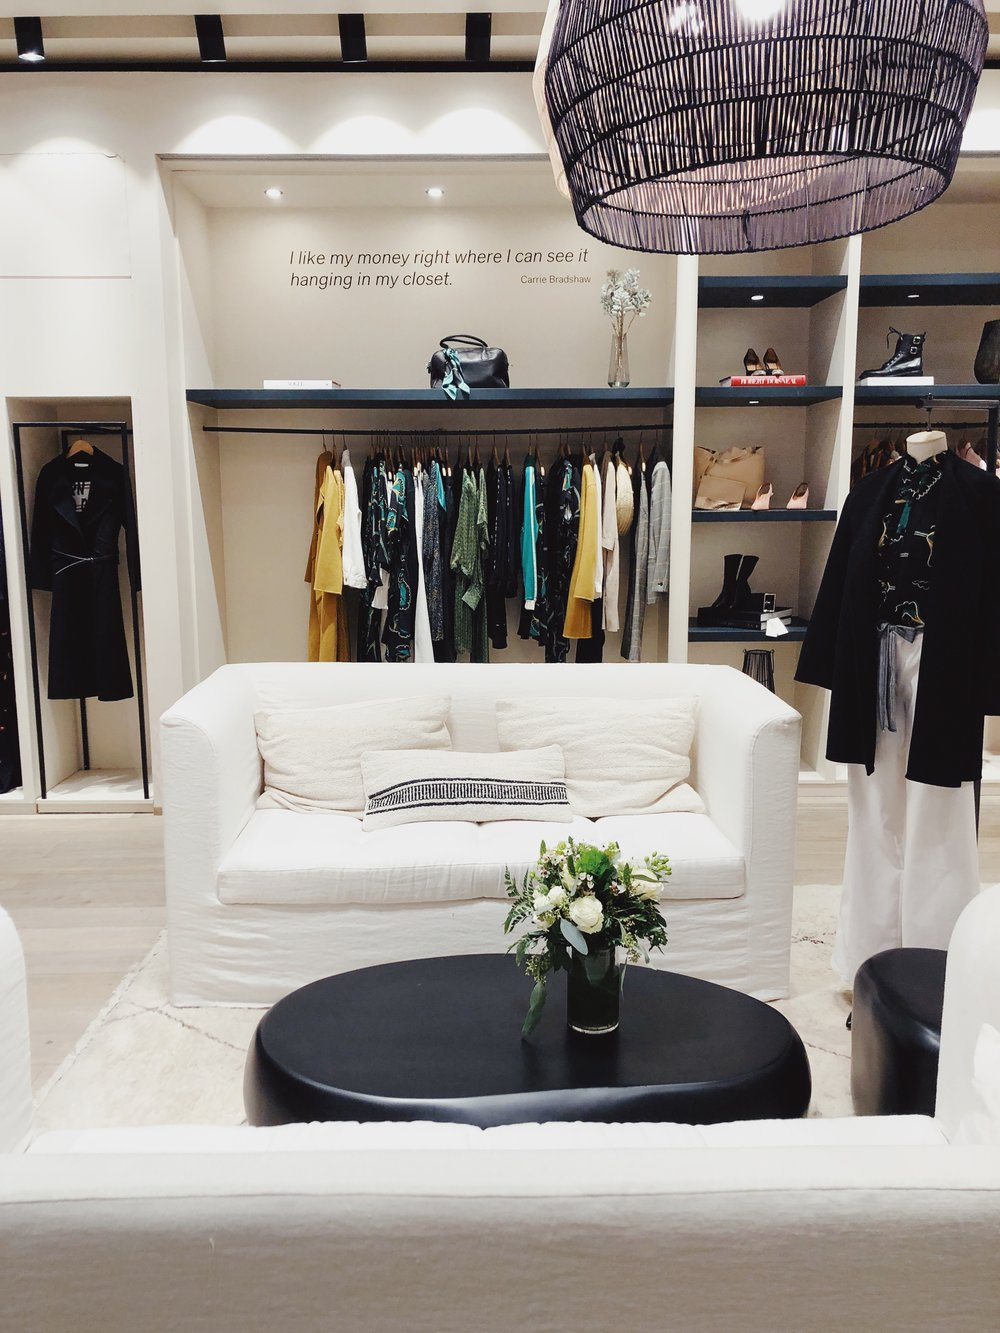 ba&sh - one of my favorite brands to shop in Belgium just opened a US flagship location in NYC